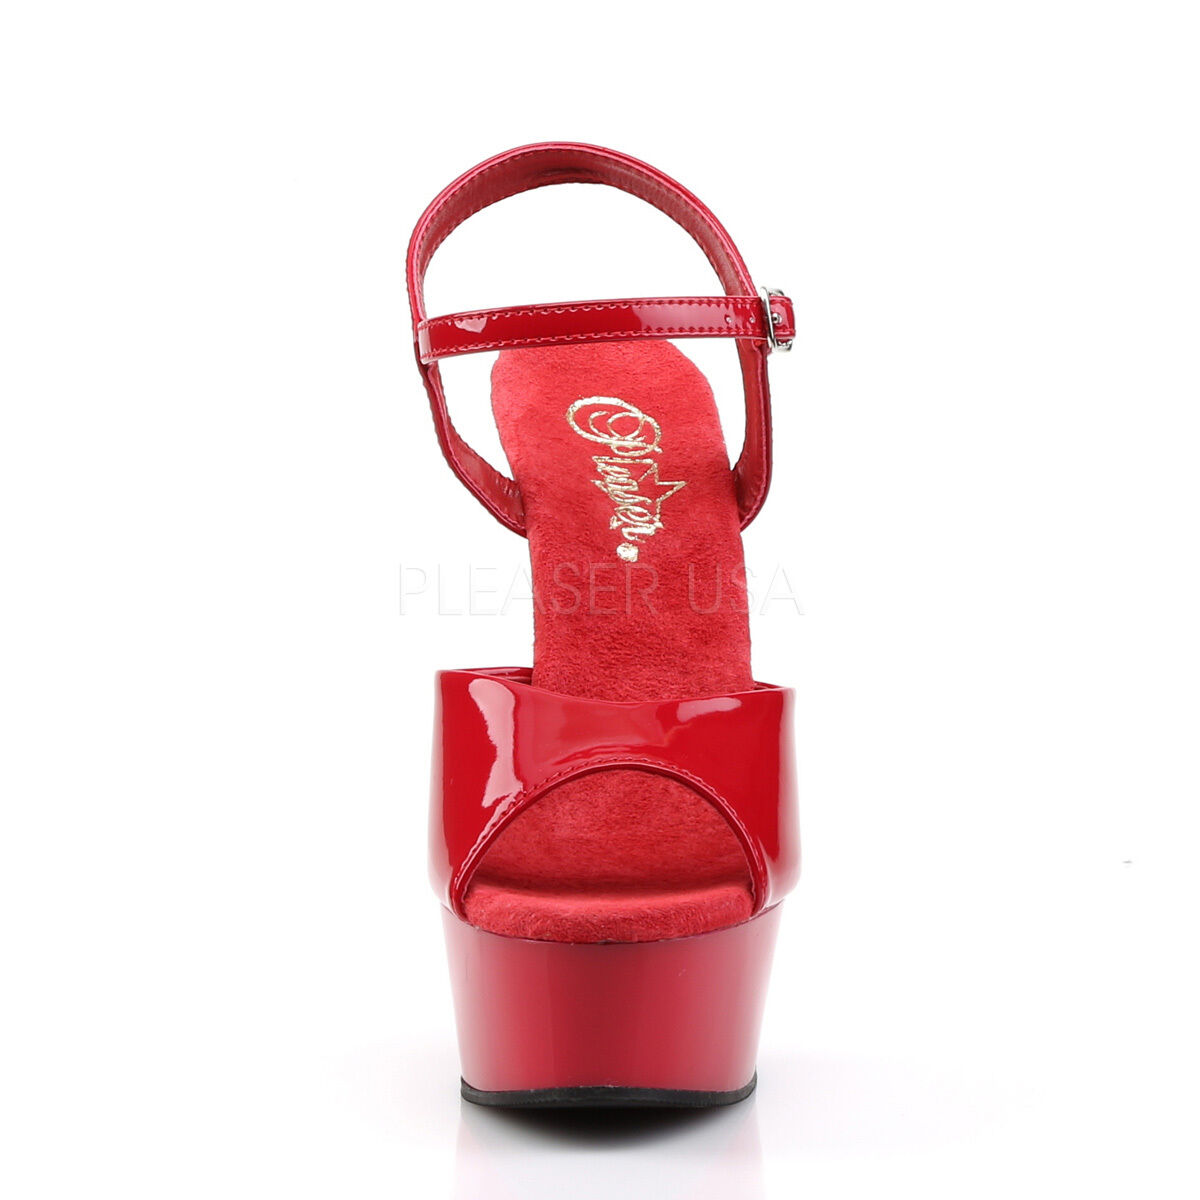 Pleaser Delight-609 Ladies Red Stiletto Heel Platform Slide Slide Slide Ankle Strap shoes 678c9d